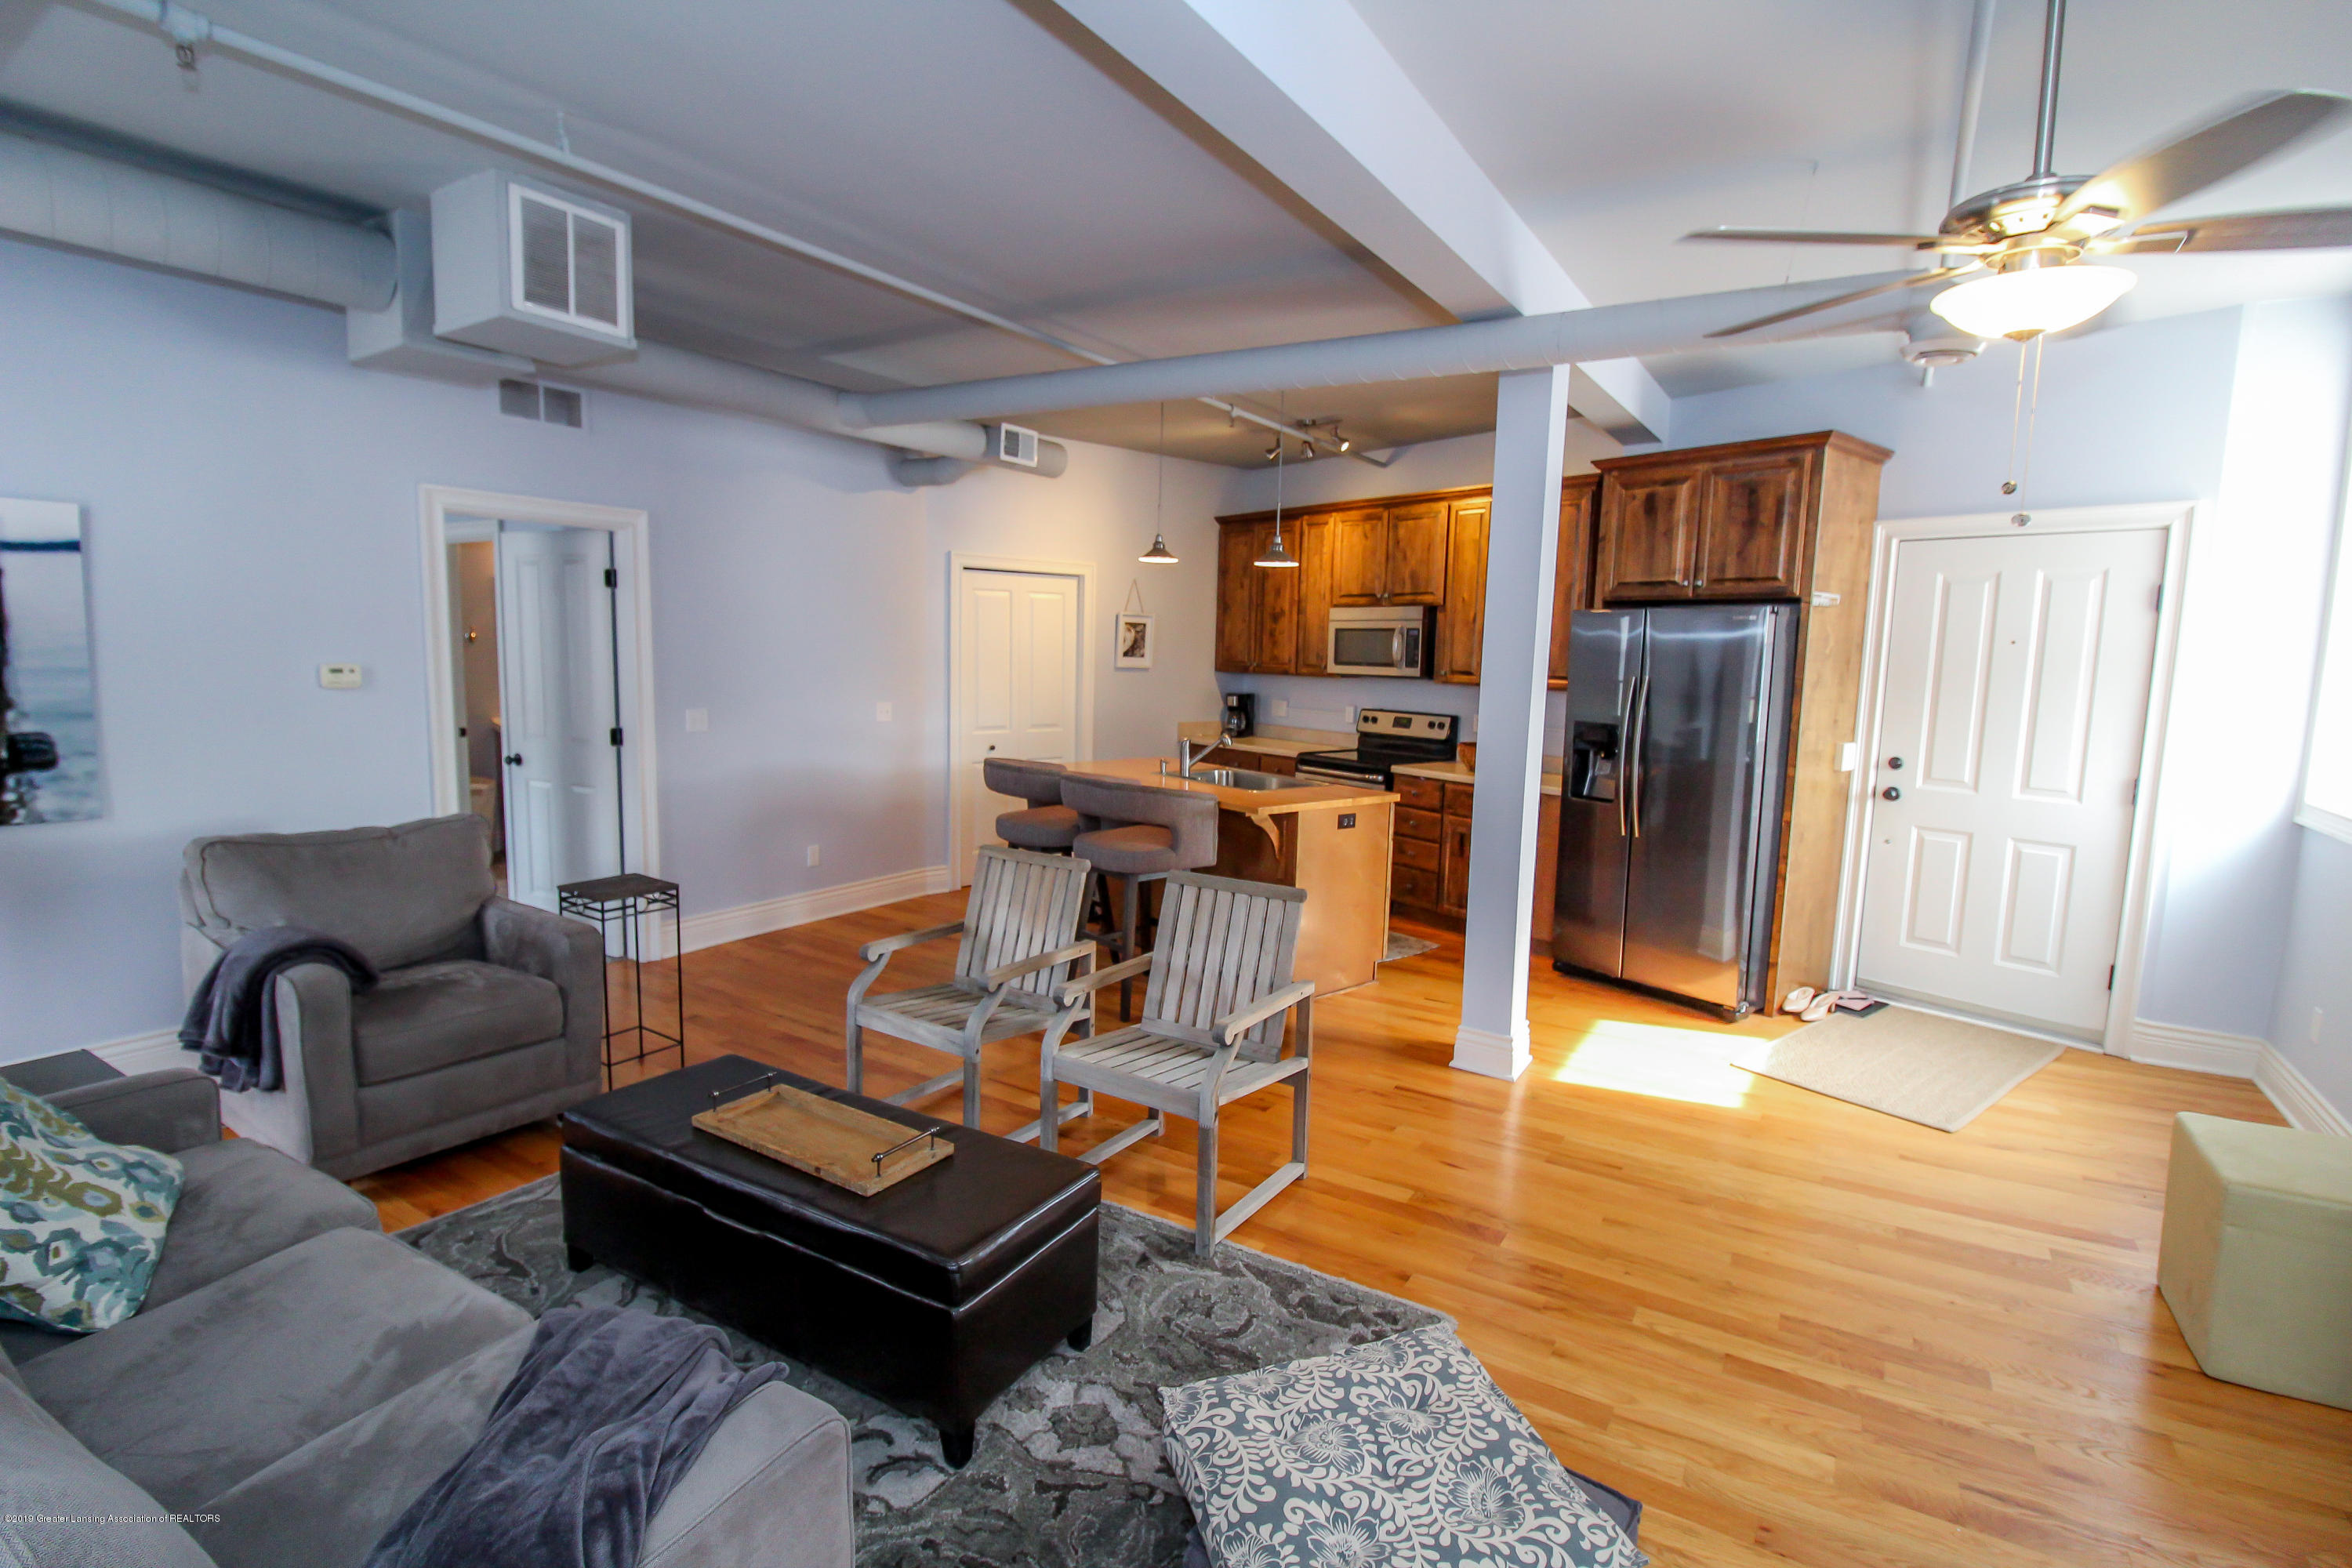 109 E Grand River Ave 4 - living space - 5